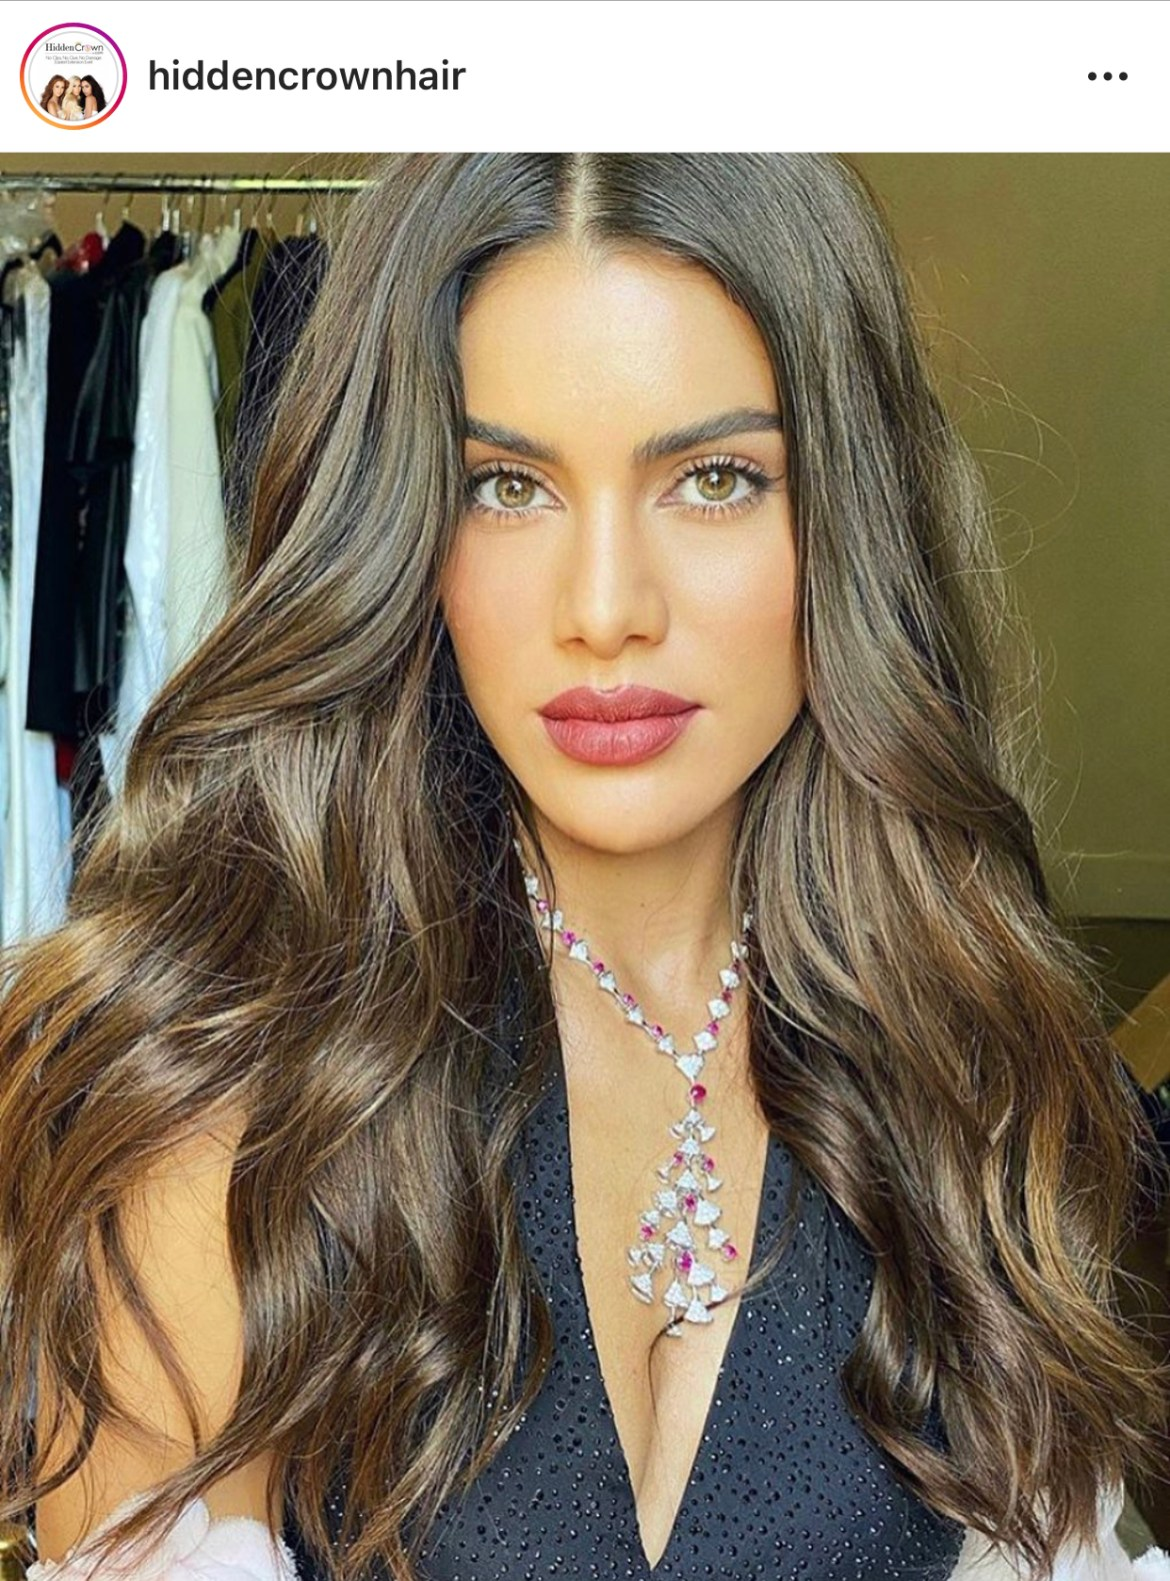 *The Best Hair Extensions You Can Find Online